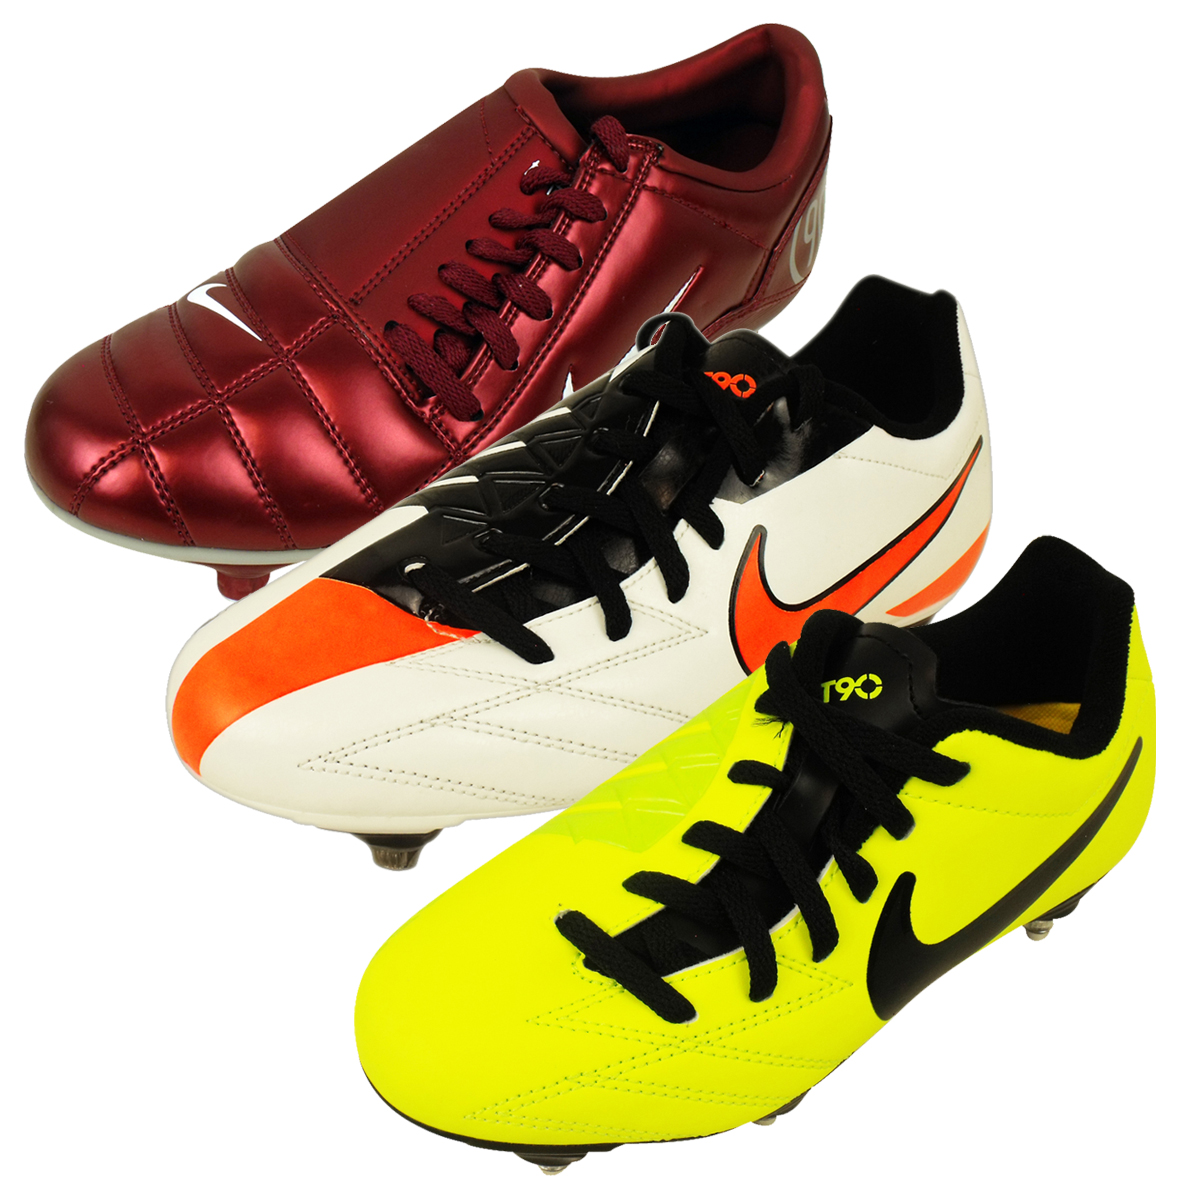 Boys Nike Total 90 SG Soft Ground Football Boots Junior ... - photo#37